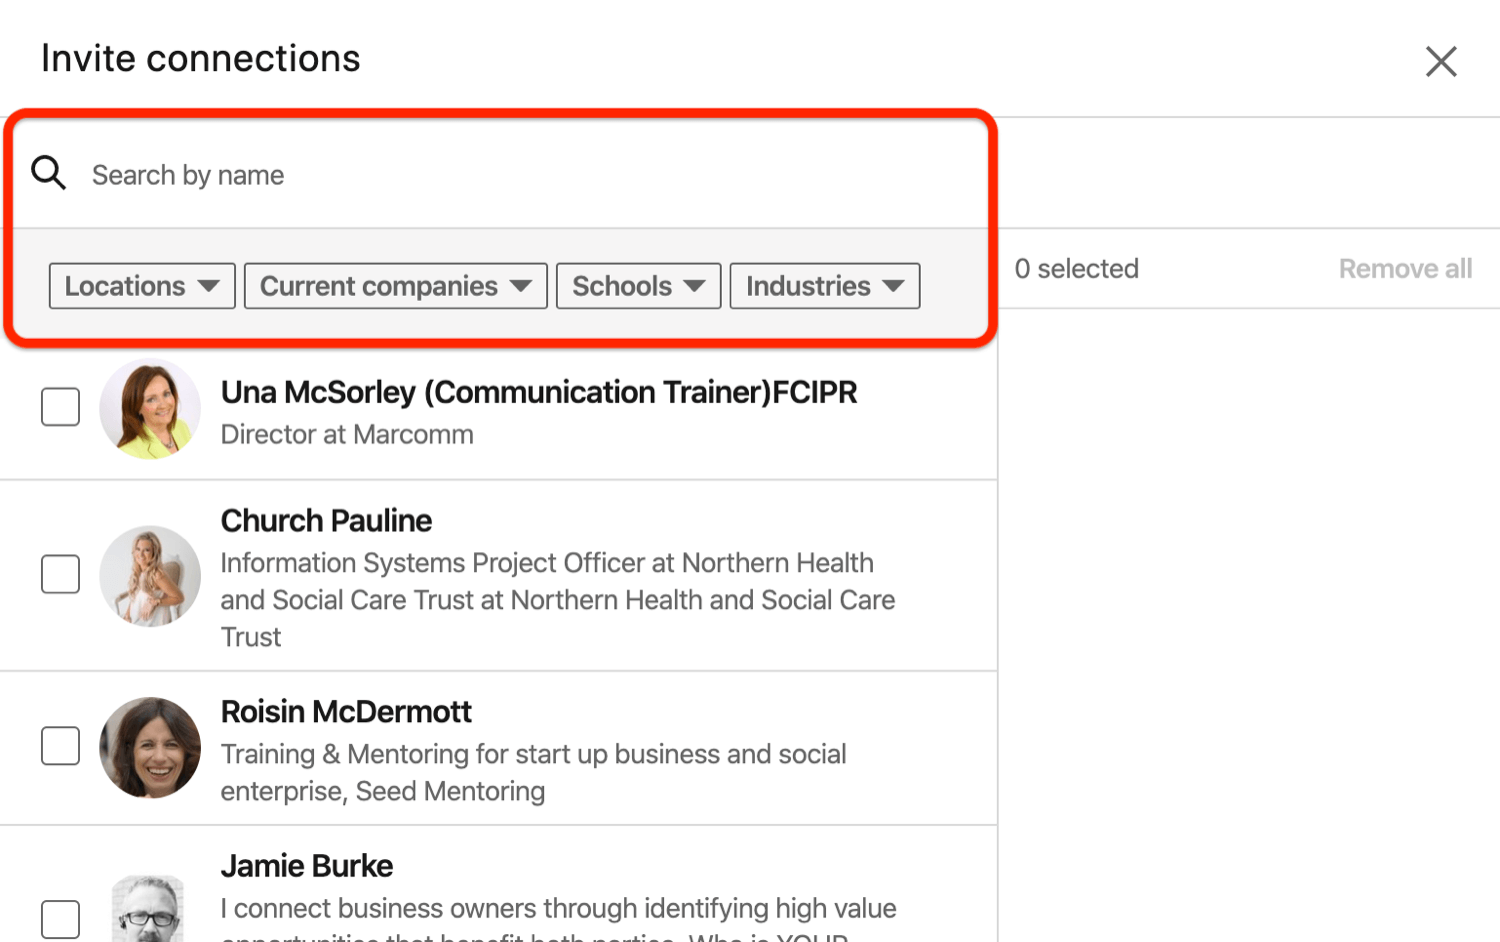 Invite Connections dialog box for LinkedIn event